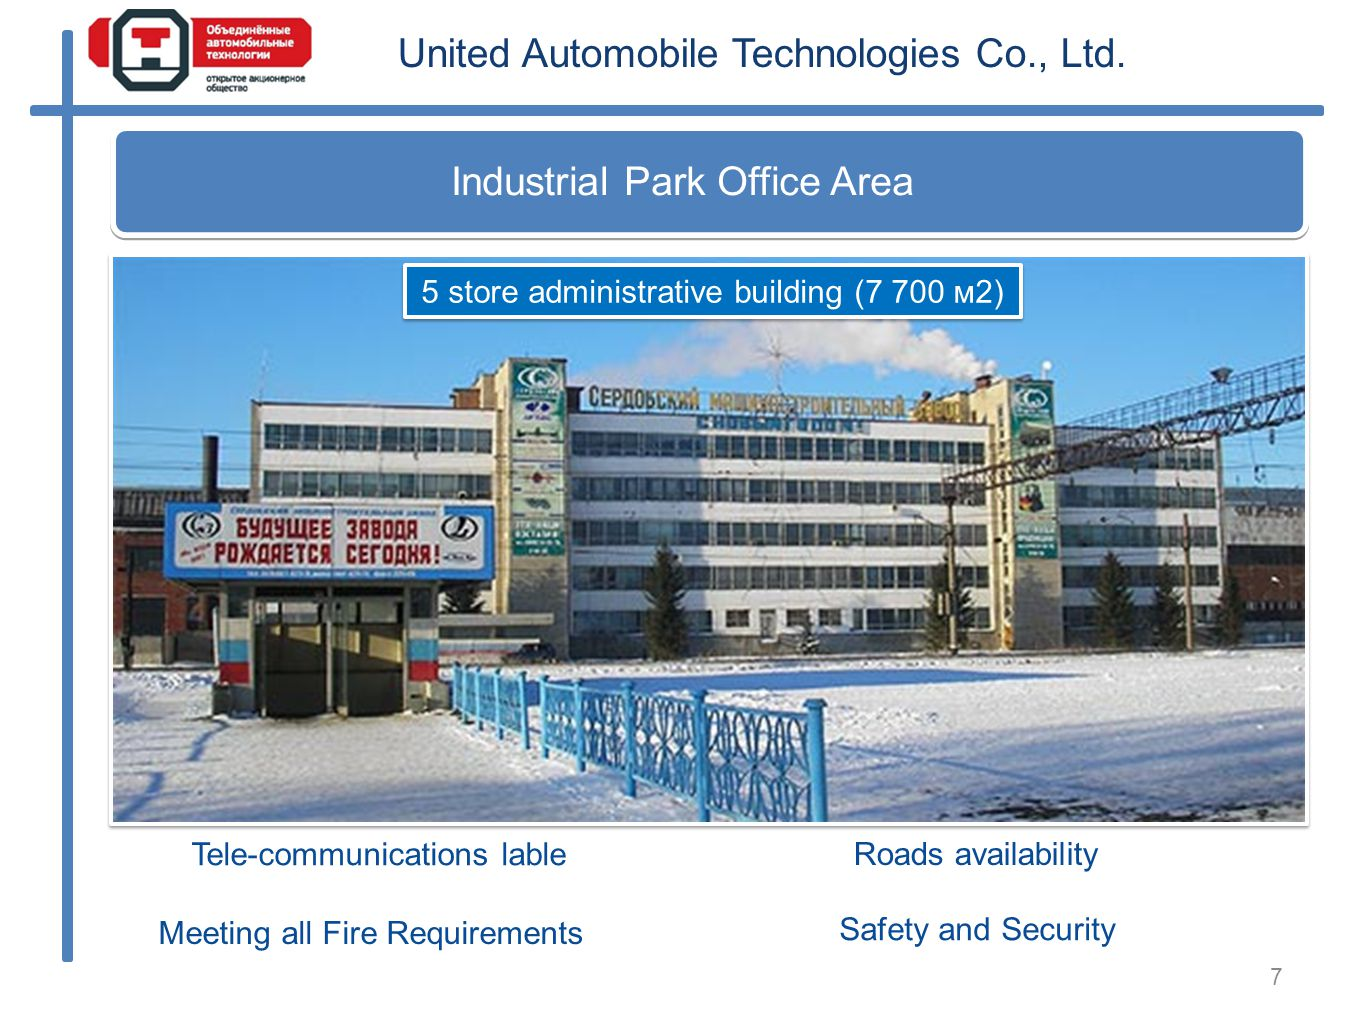 Industrial Park Office Area 7 Tele-communications lable 5 store administrative building (7 700 м2) Meeting all Fire Requirements Roads availability Safety and Security United Automobile Technologies Co., Ltd.